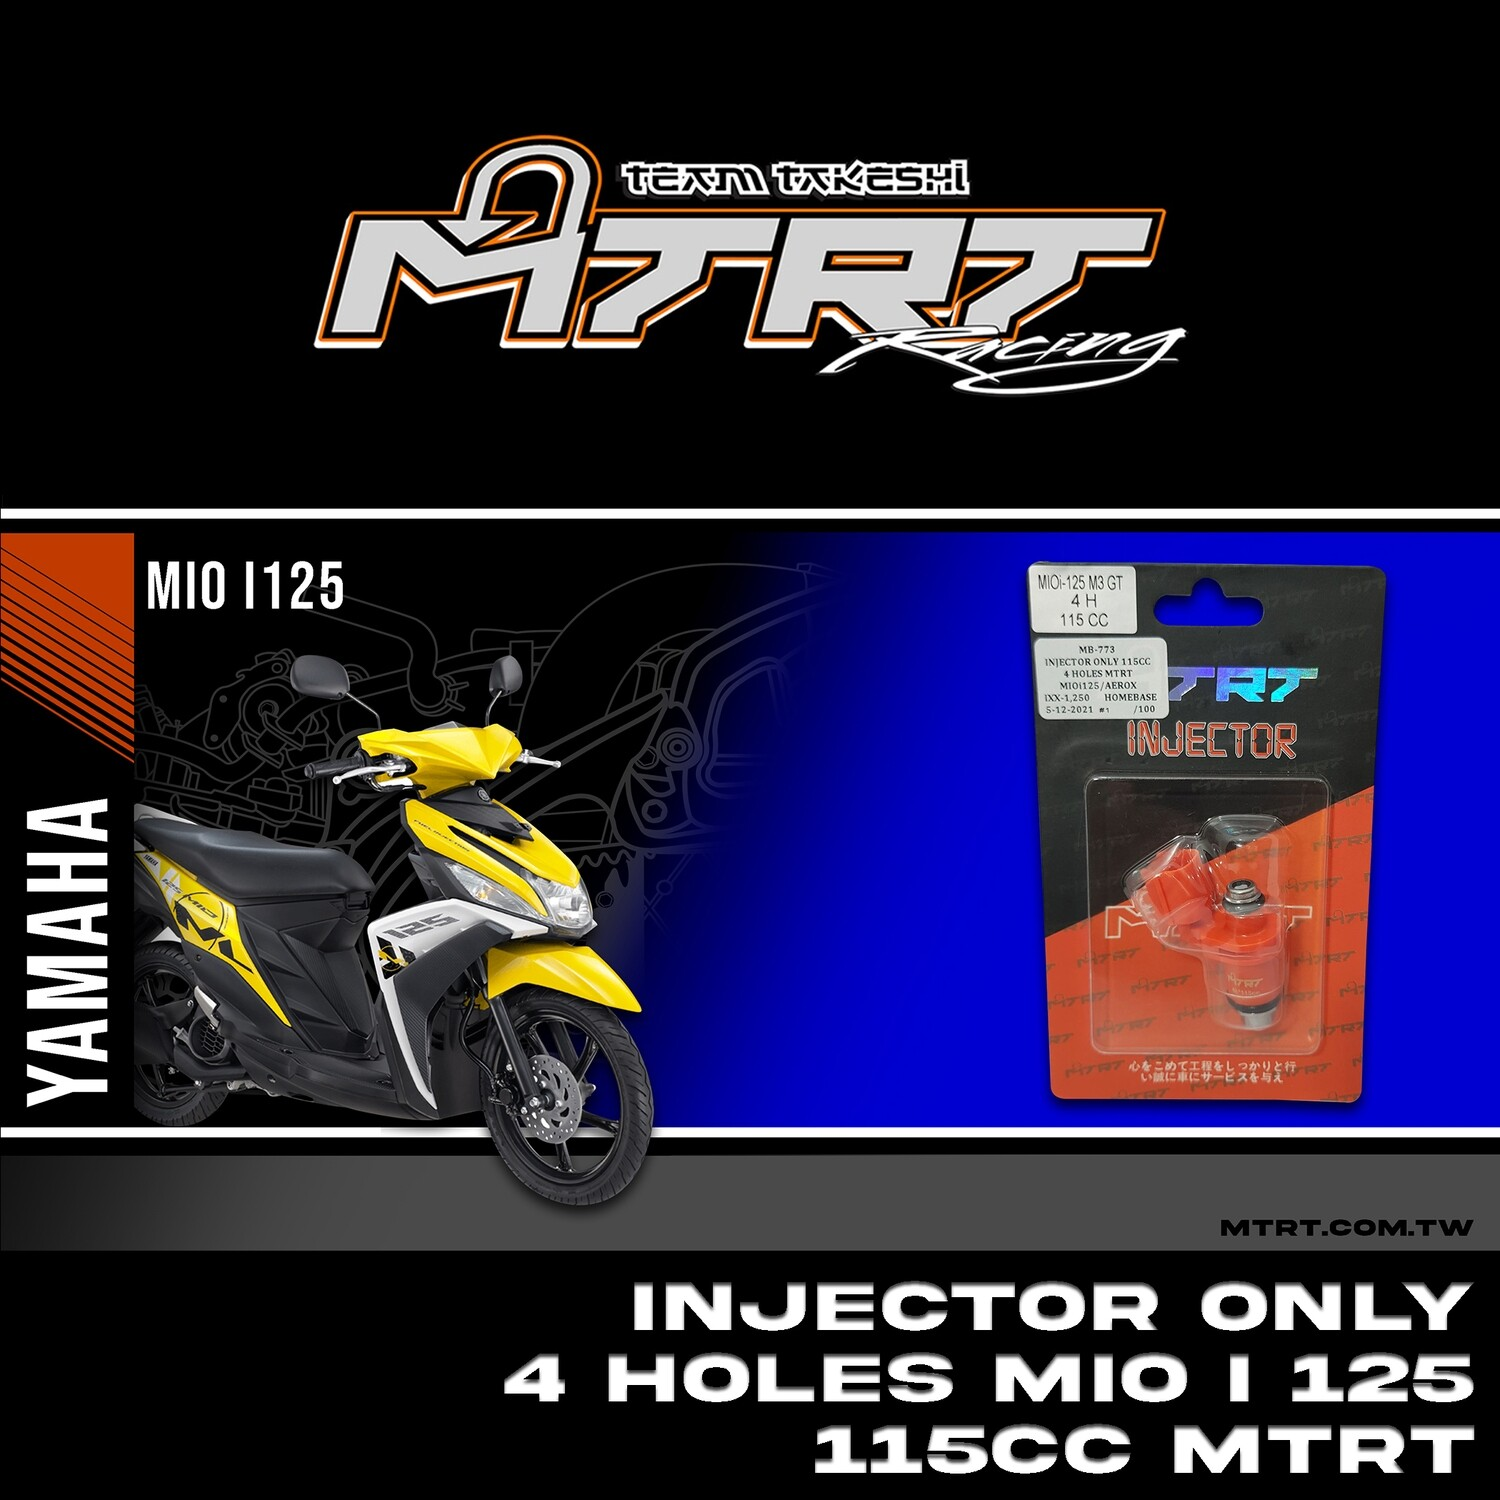 INJECTOR ONLY 4HOLES  MIOi125/Aerox155  115CC MTRT